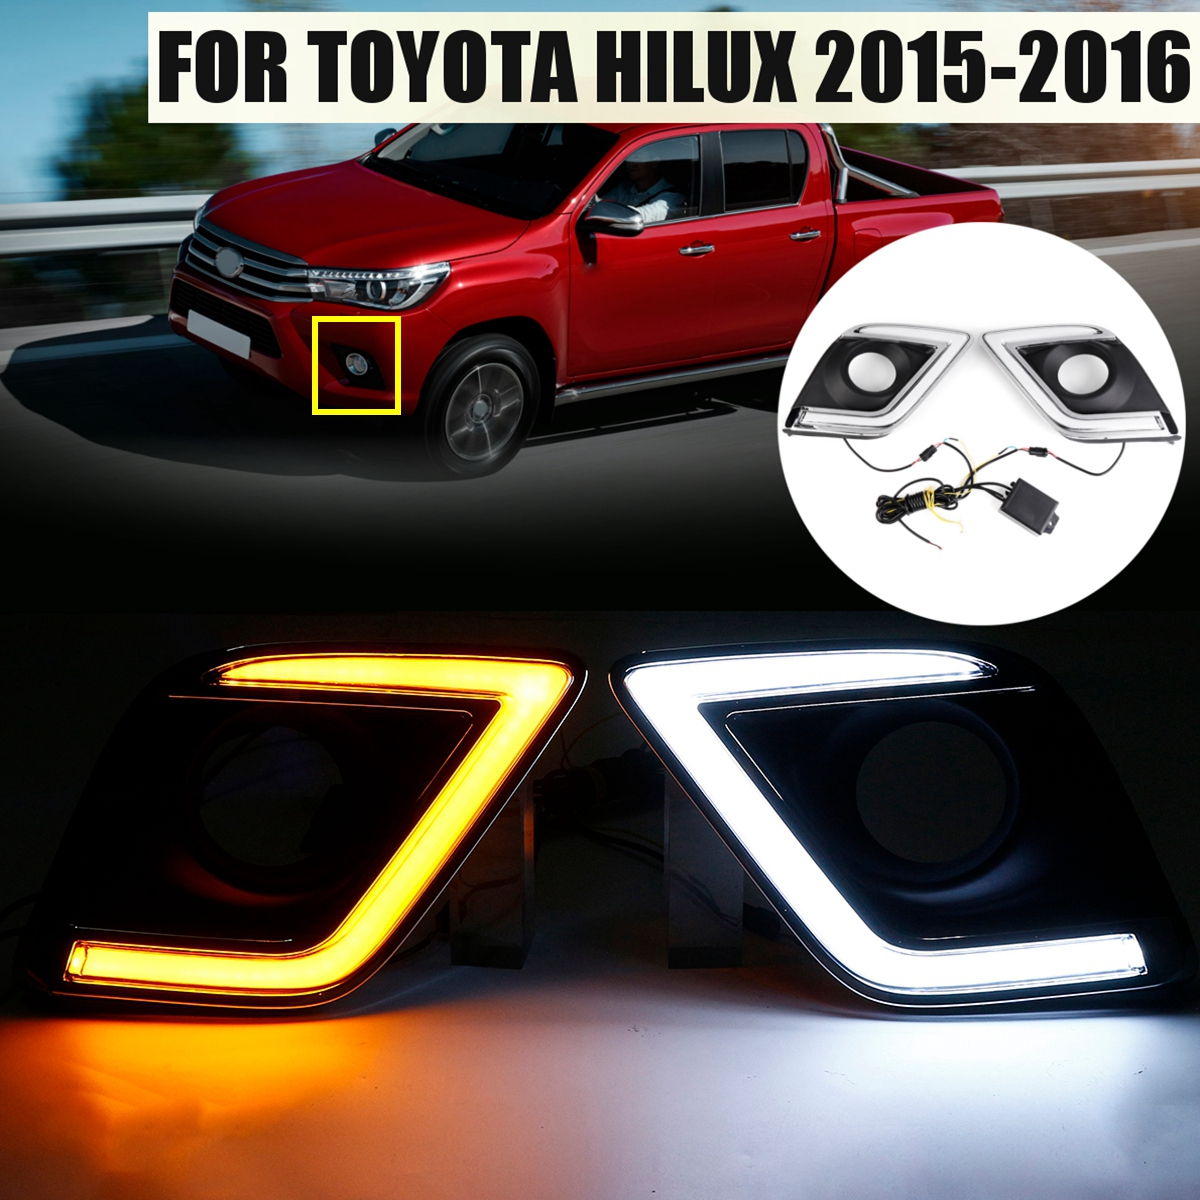 For Toyota Hilux Revo 2015-2016 1 Pair Car LED DRL Daytime Running Lights Turn Signal Lamp DRL fog lamp cover with turn signal 2x led daytime running lights daylight turn signal drl lamp car styling light for ford ranger px mk2 2015 2016 2017 2018